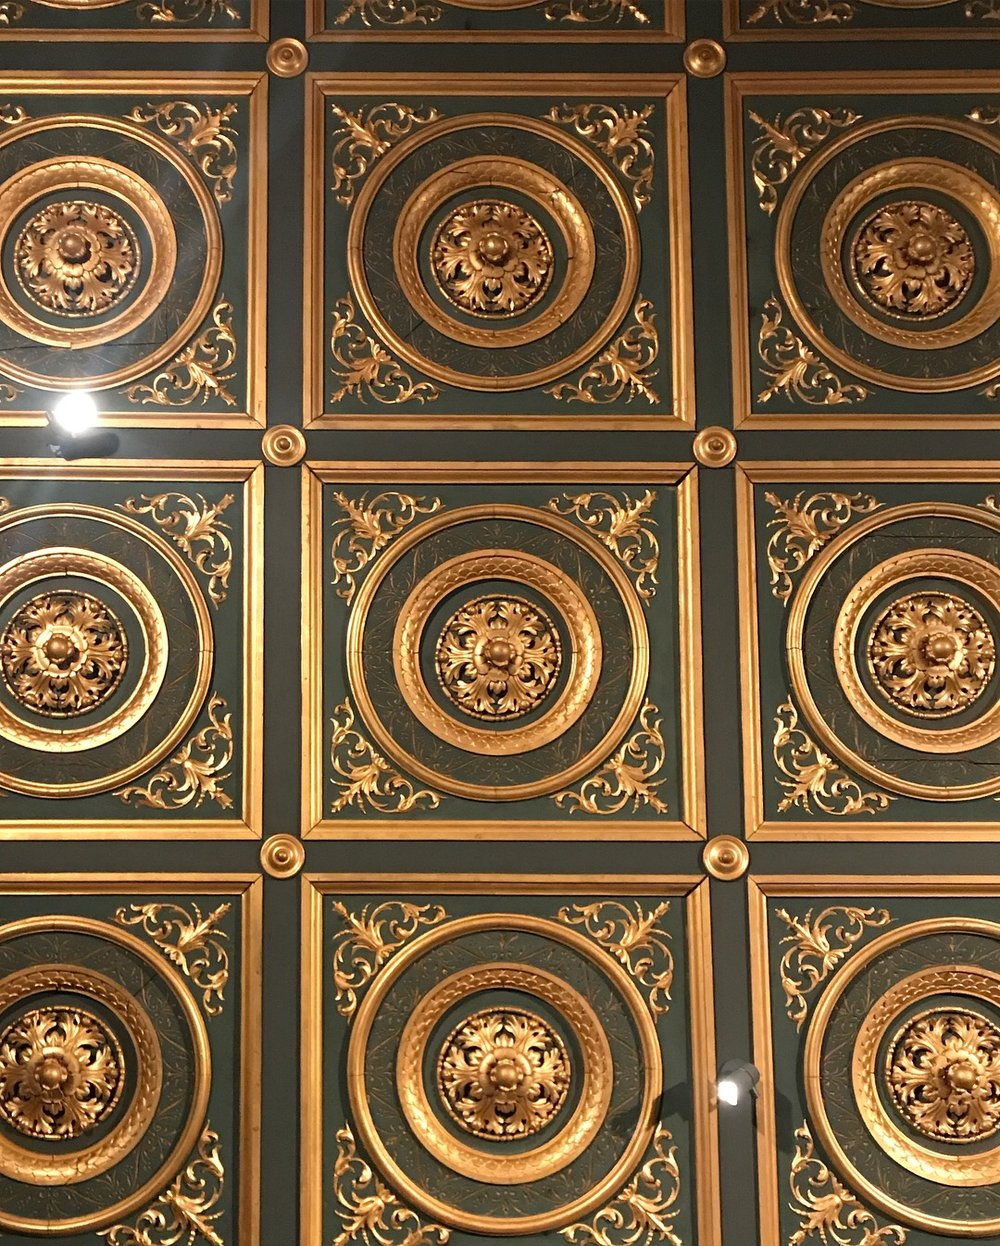 Isabella Stewart Gardner Estate gilded ceiling tile detail, LGD Team (Crystina Castiglione Photography).